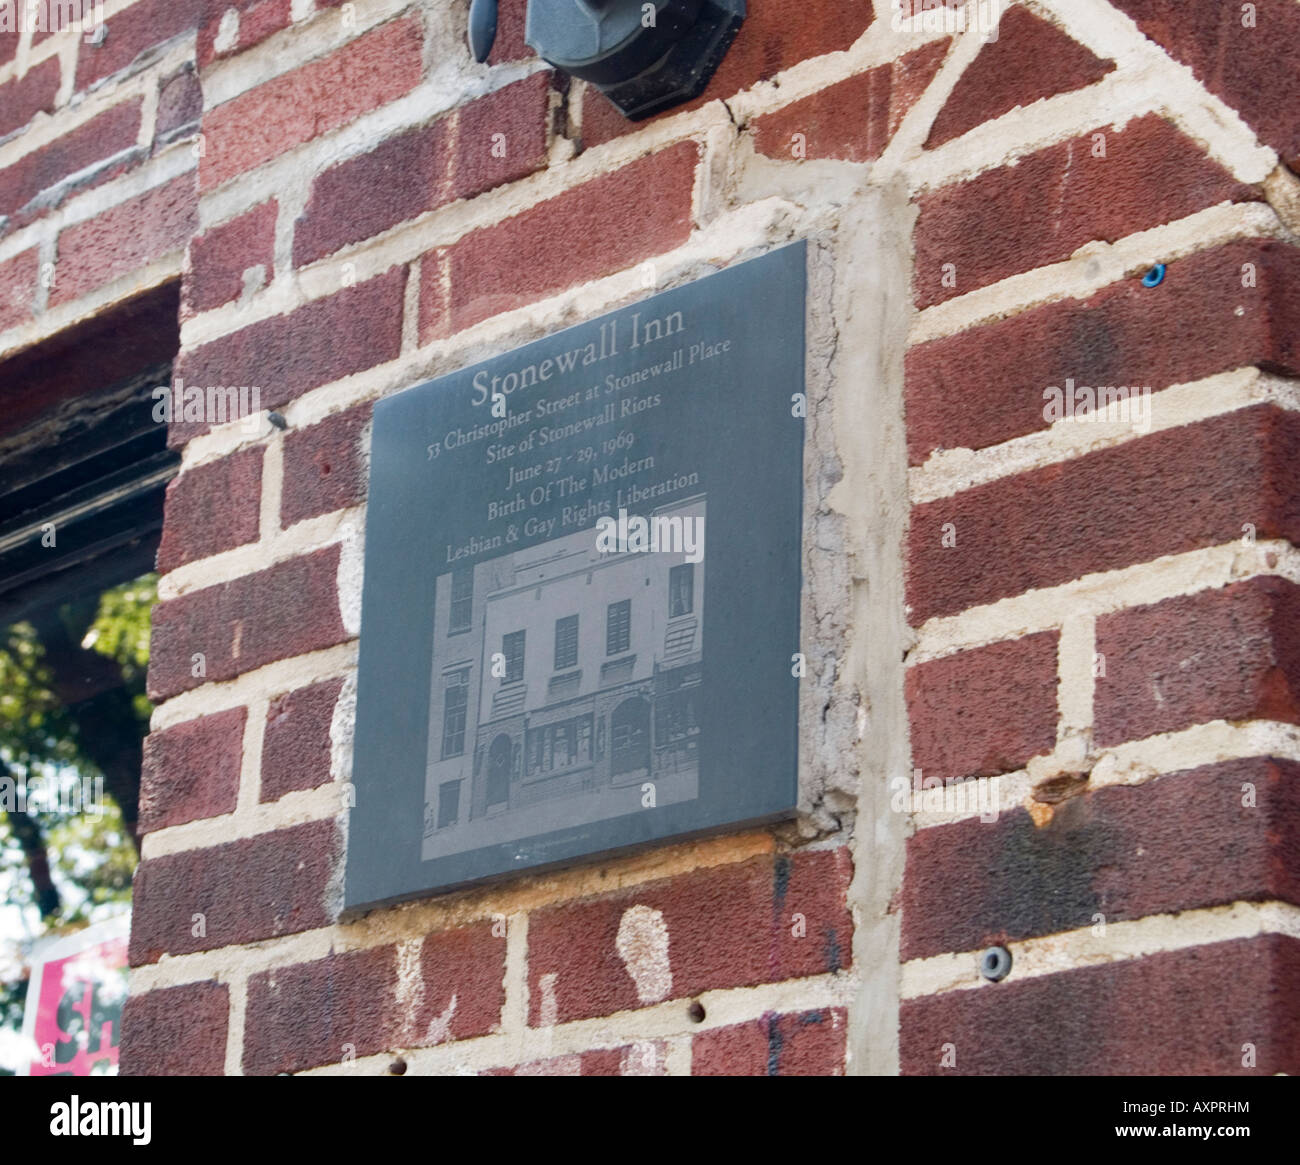 A plaque on the wall outside the Stonewall Inn on Christopher Street in the gay area of New York City USA - Stock Image